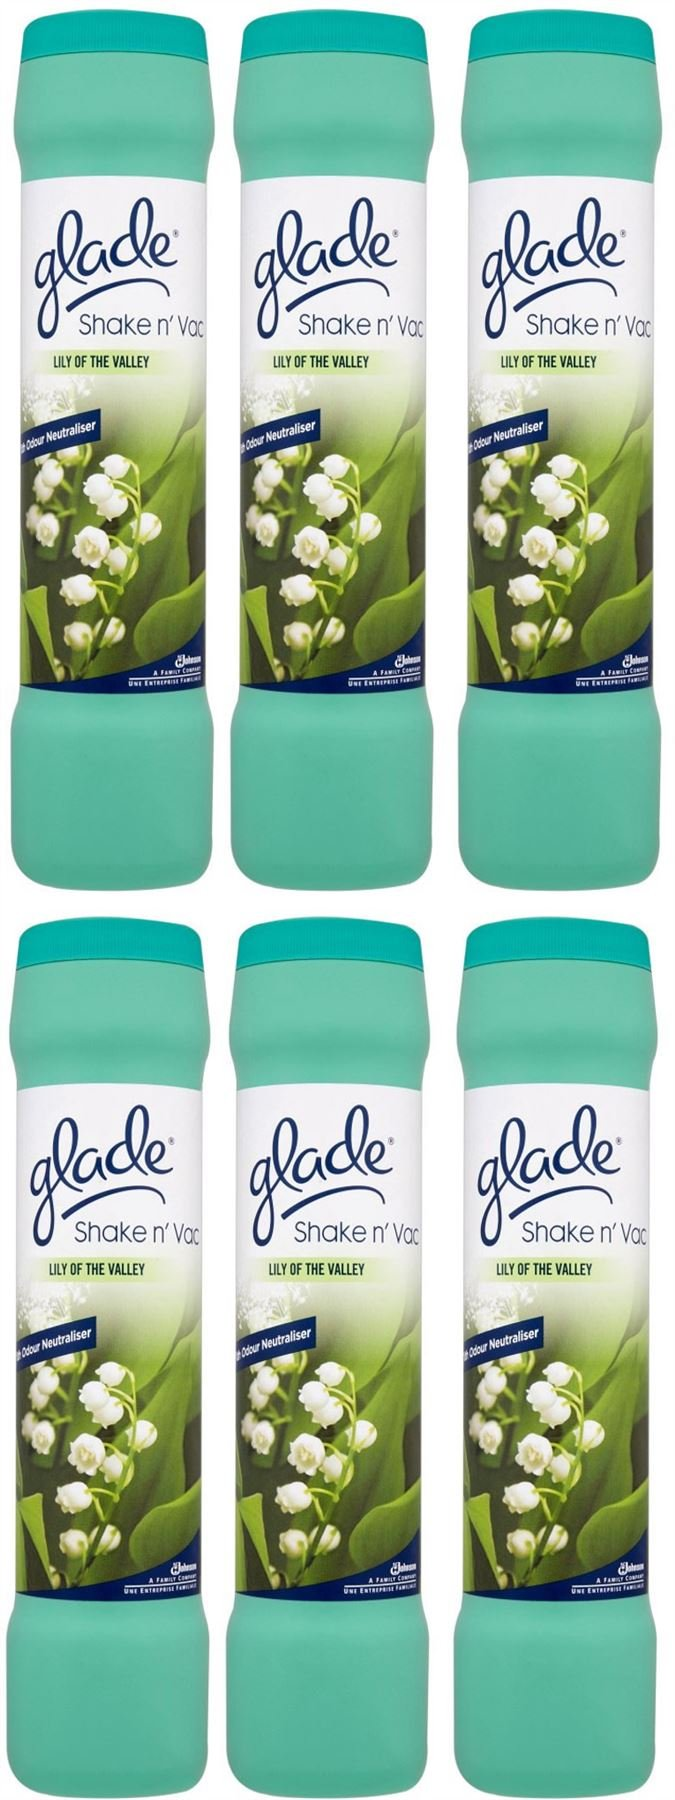 6 x Glade Shake 'n' Vac Lily Of The Valley Carpet Cleaning Powder 500gm by Glade